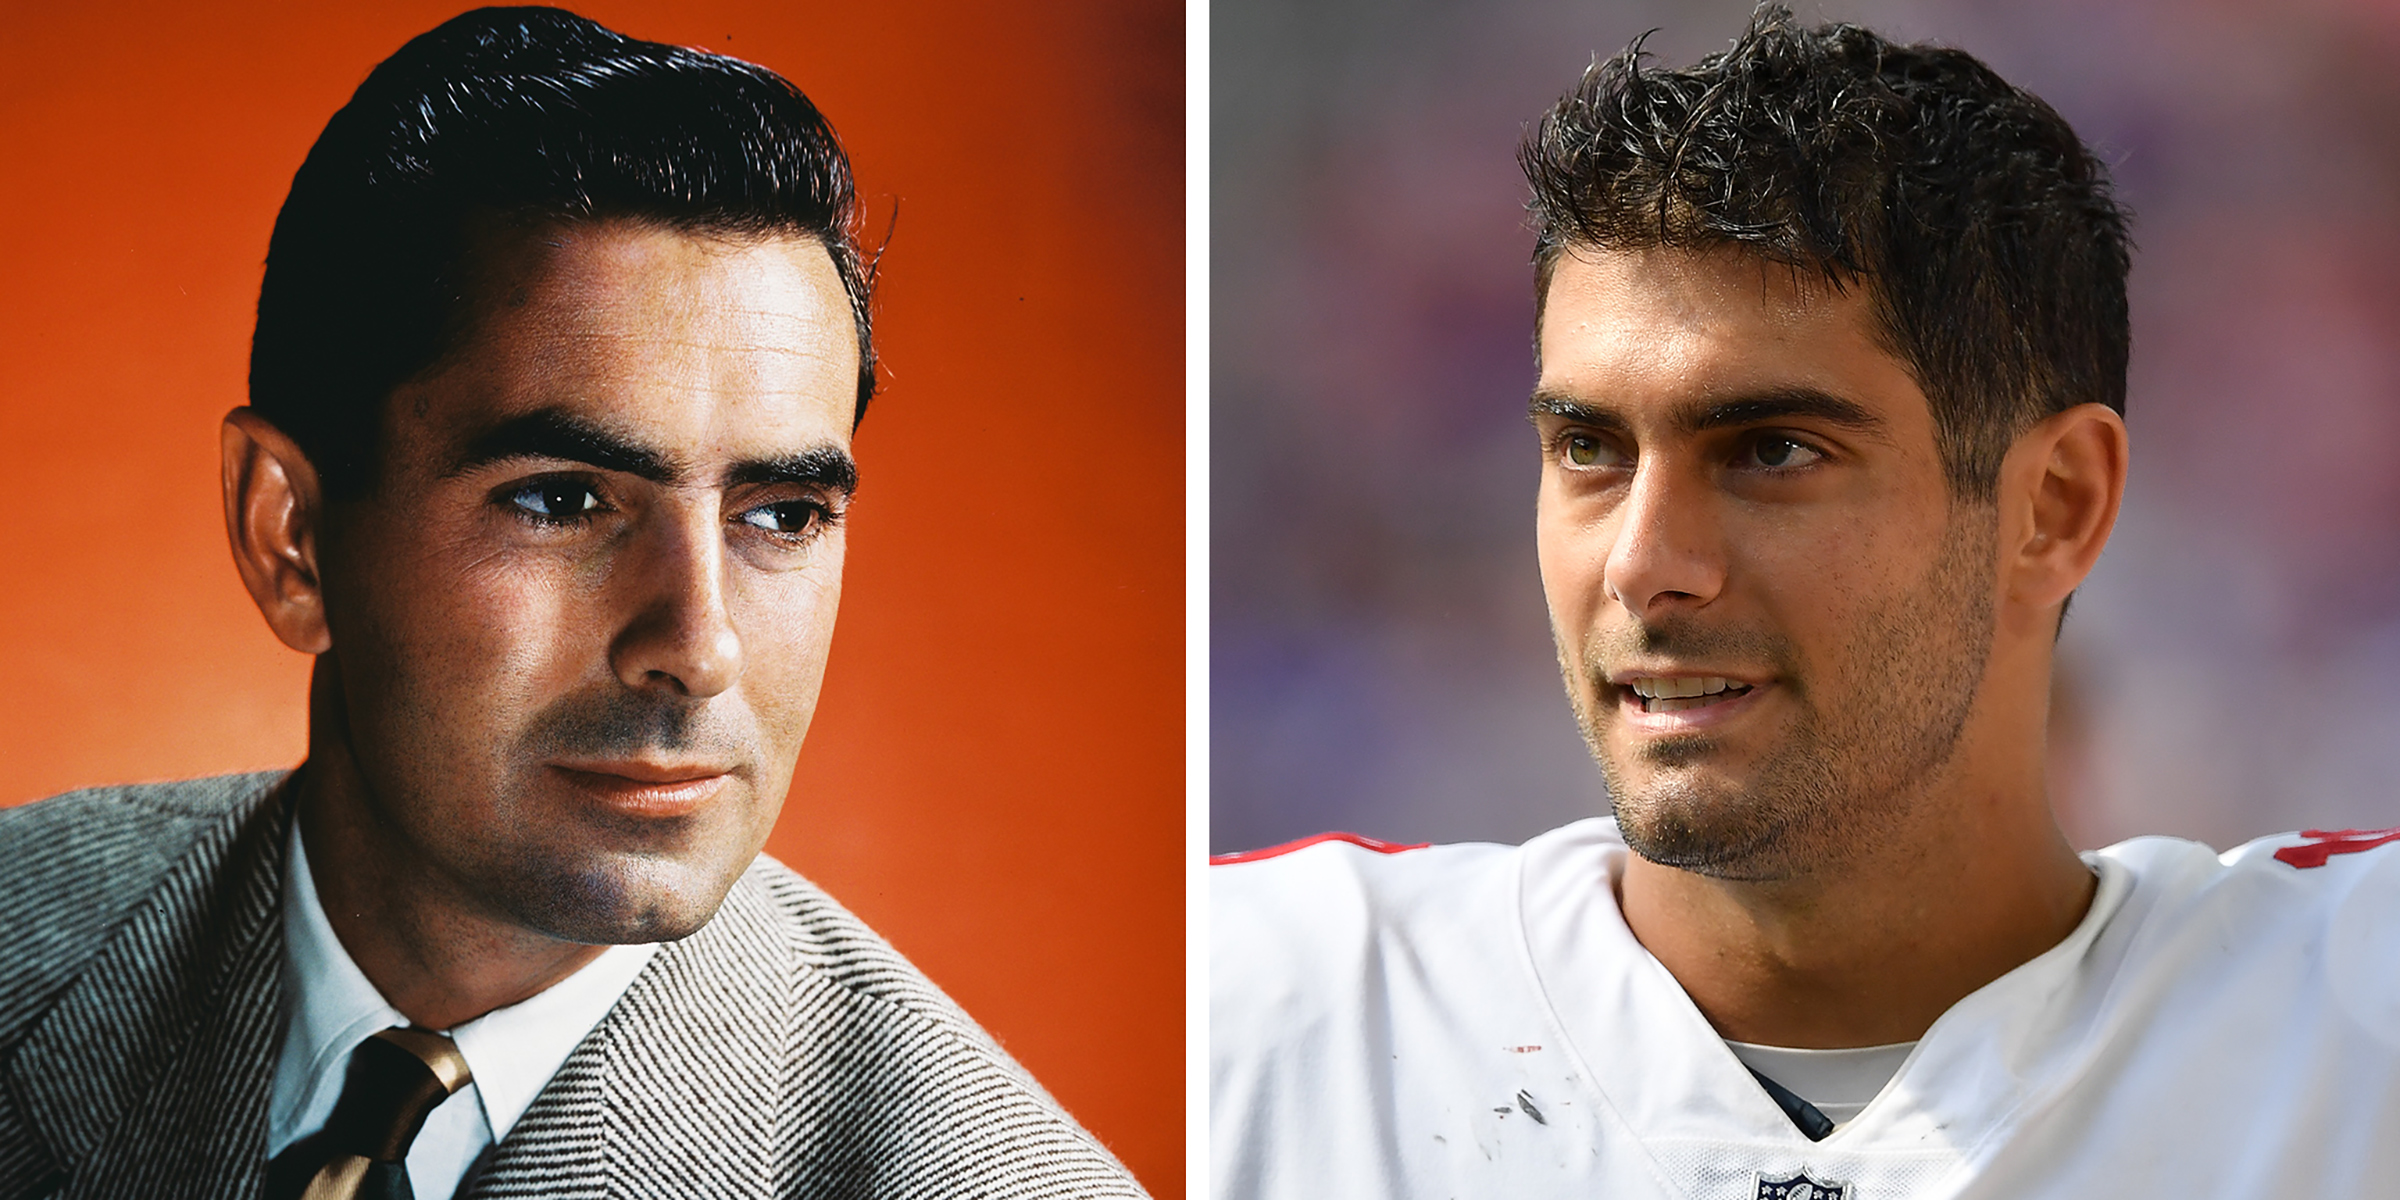 US Actor Tyrone Power and San Francisco 49ers Quarterback Jimmy Garoppolo.